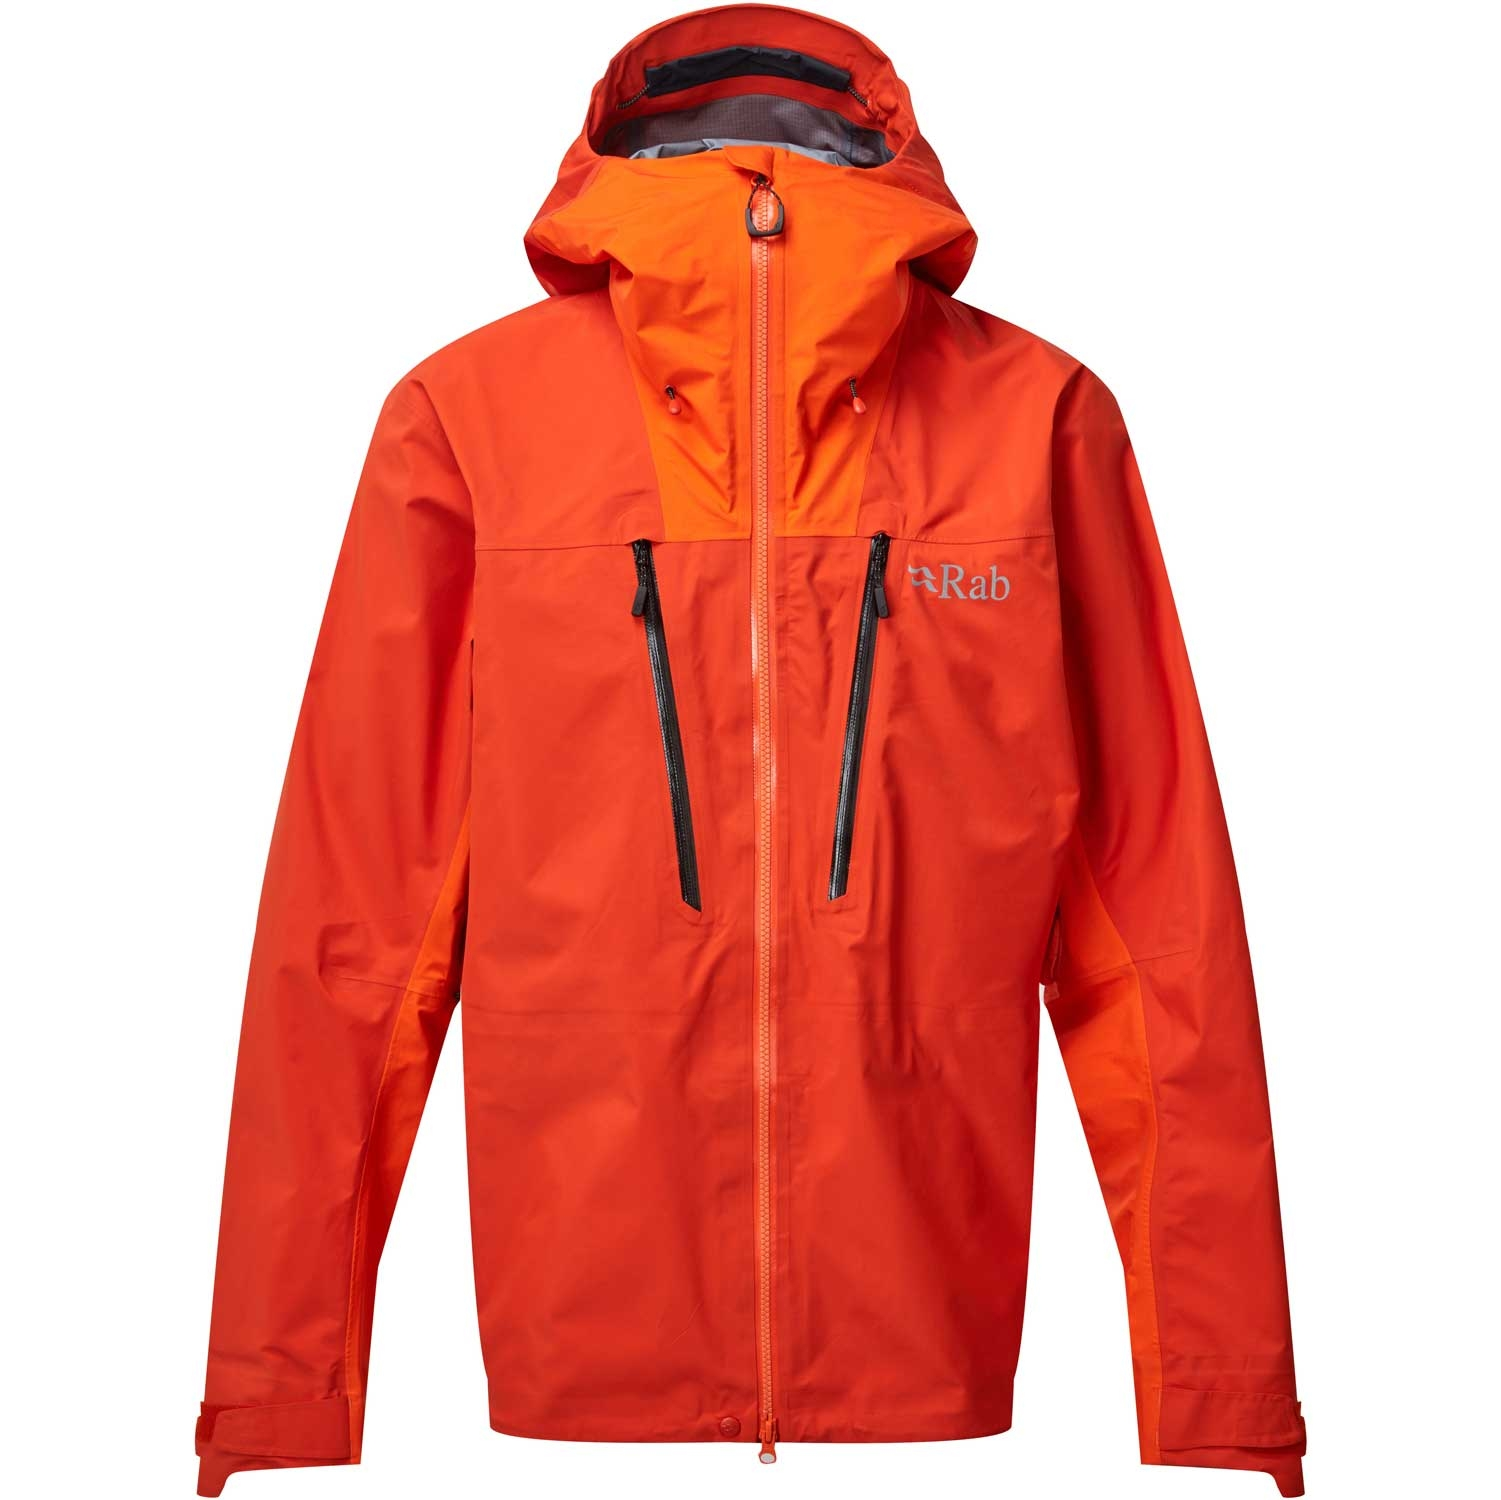 Waterproof Mountaineering Jackets